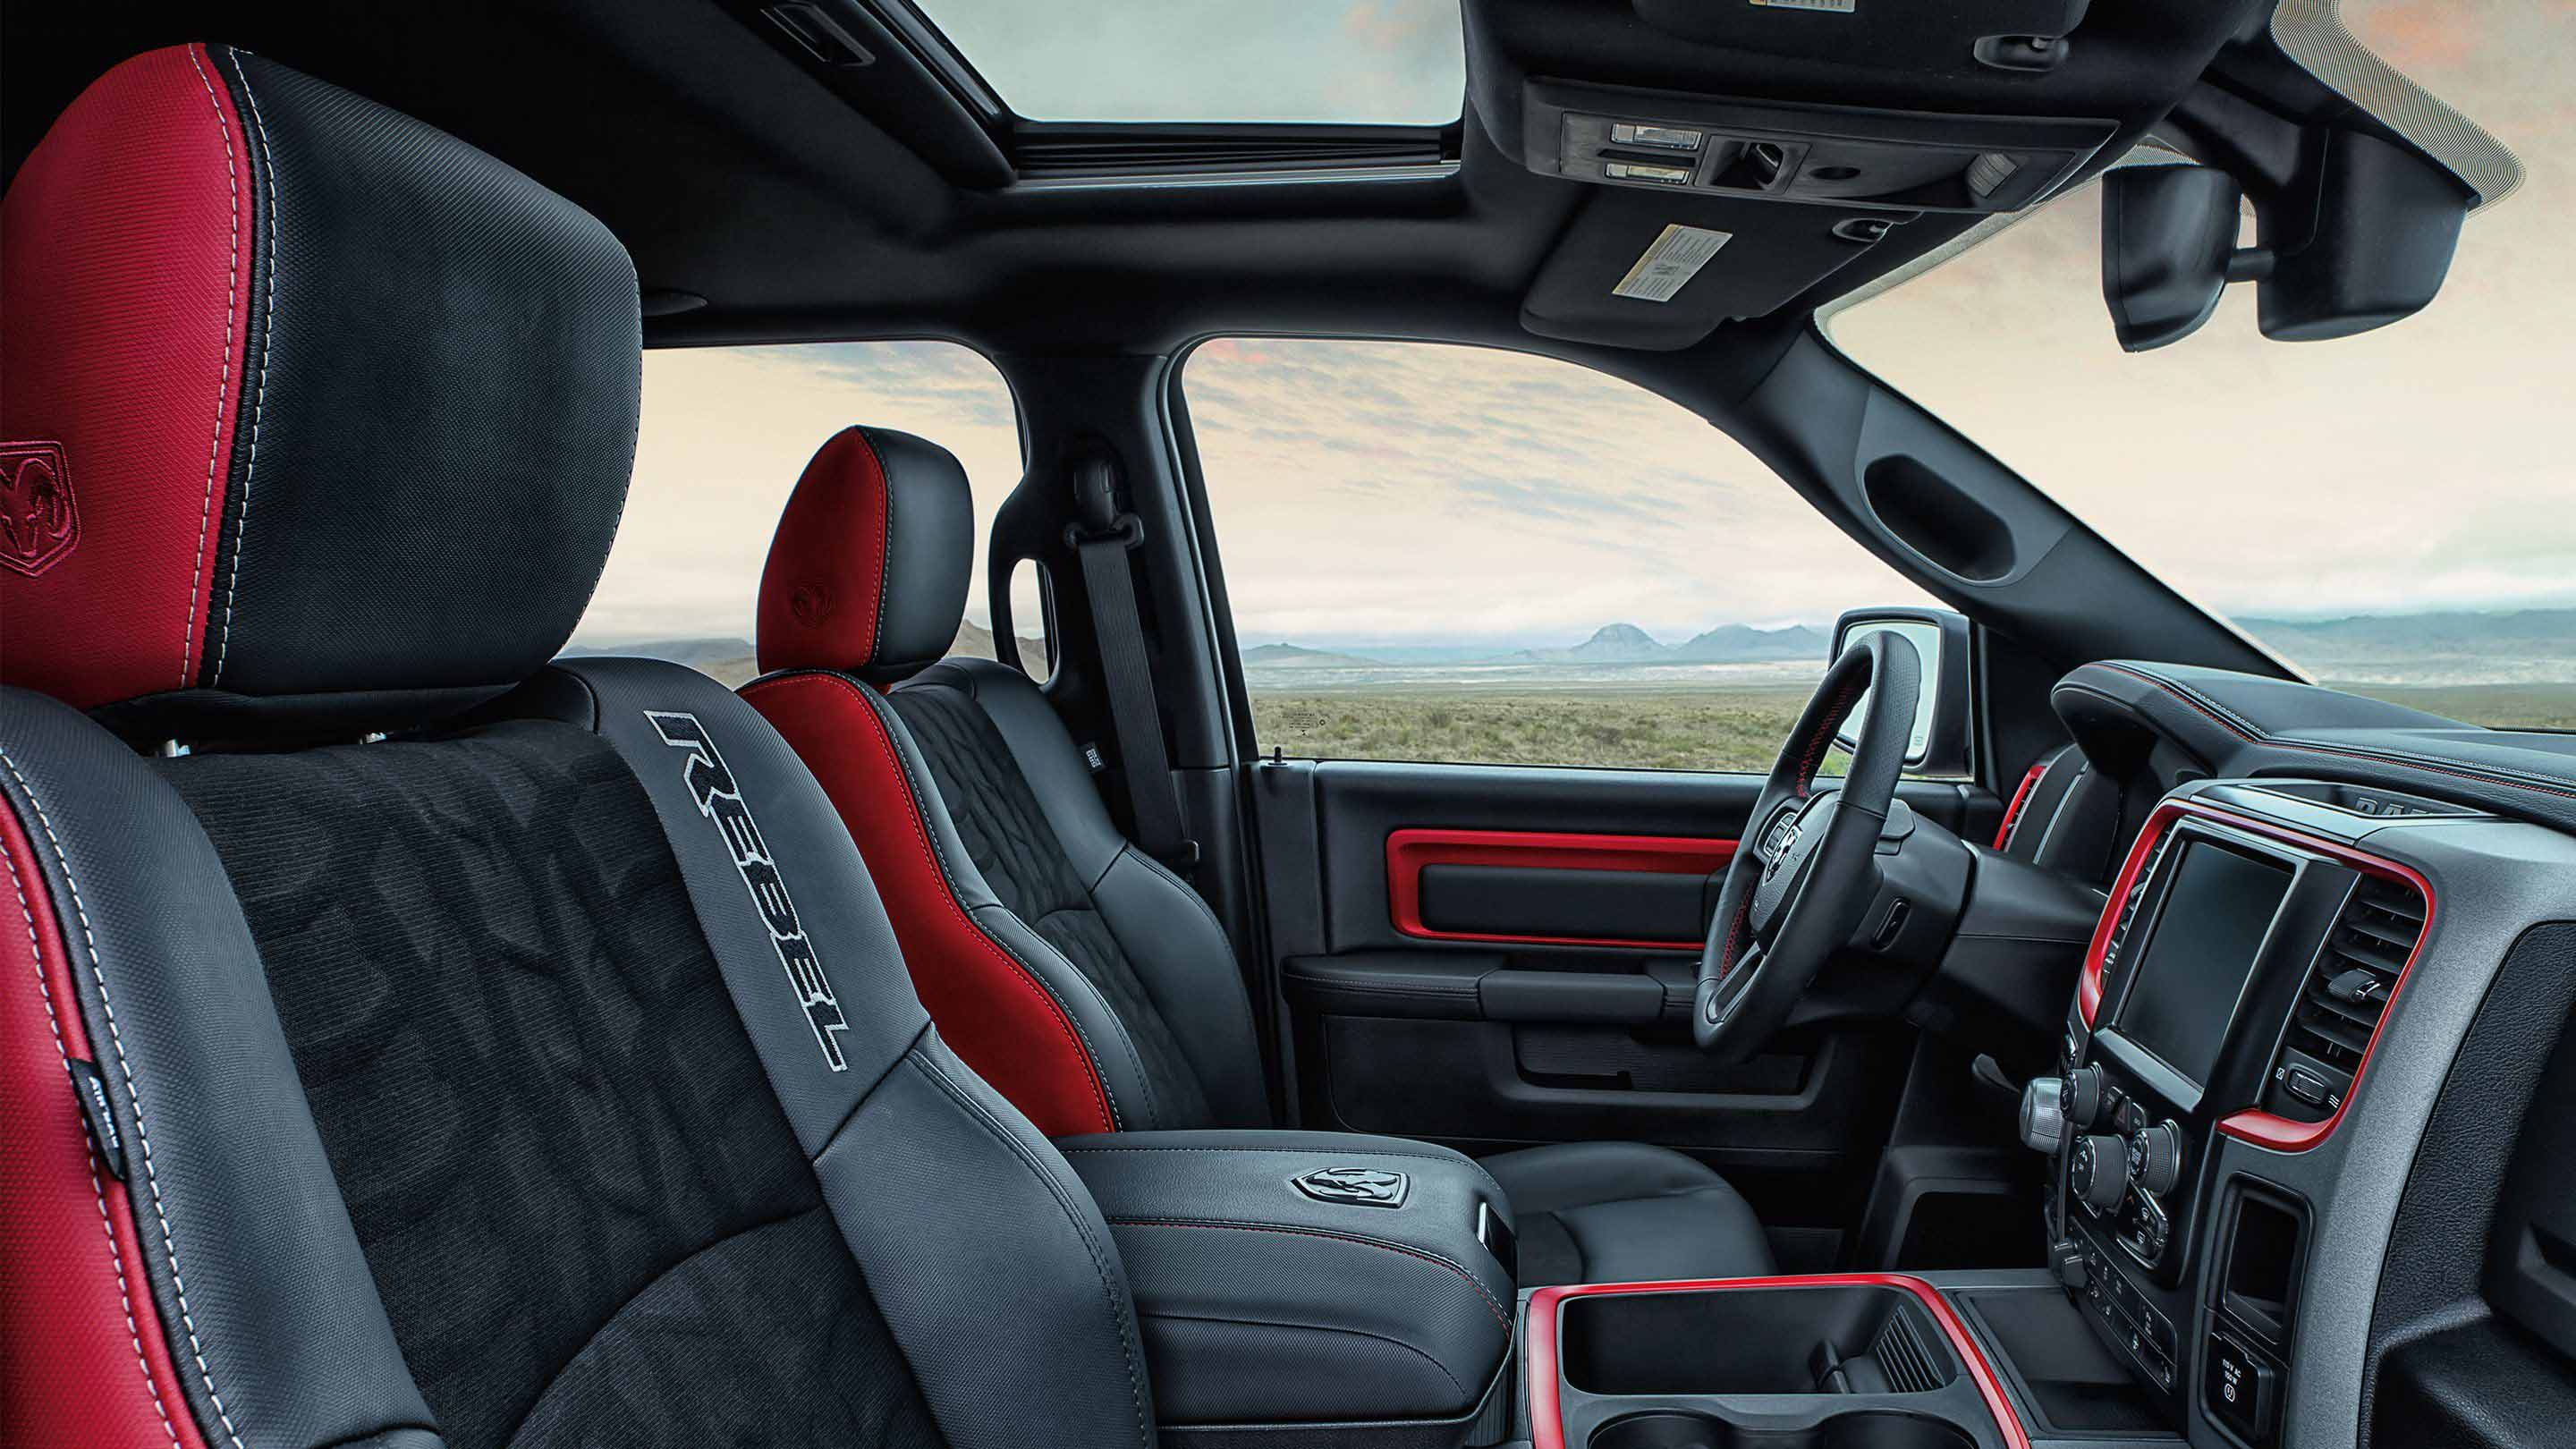 2016 Dodge Charger Interior Lights Wont Turn Off Best Electronic 2017